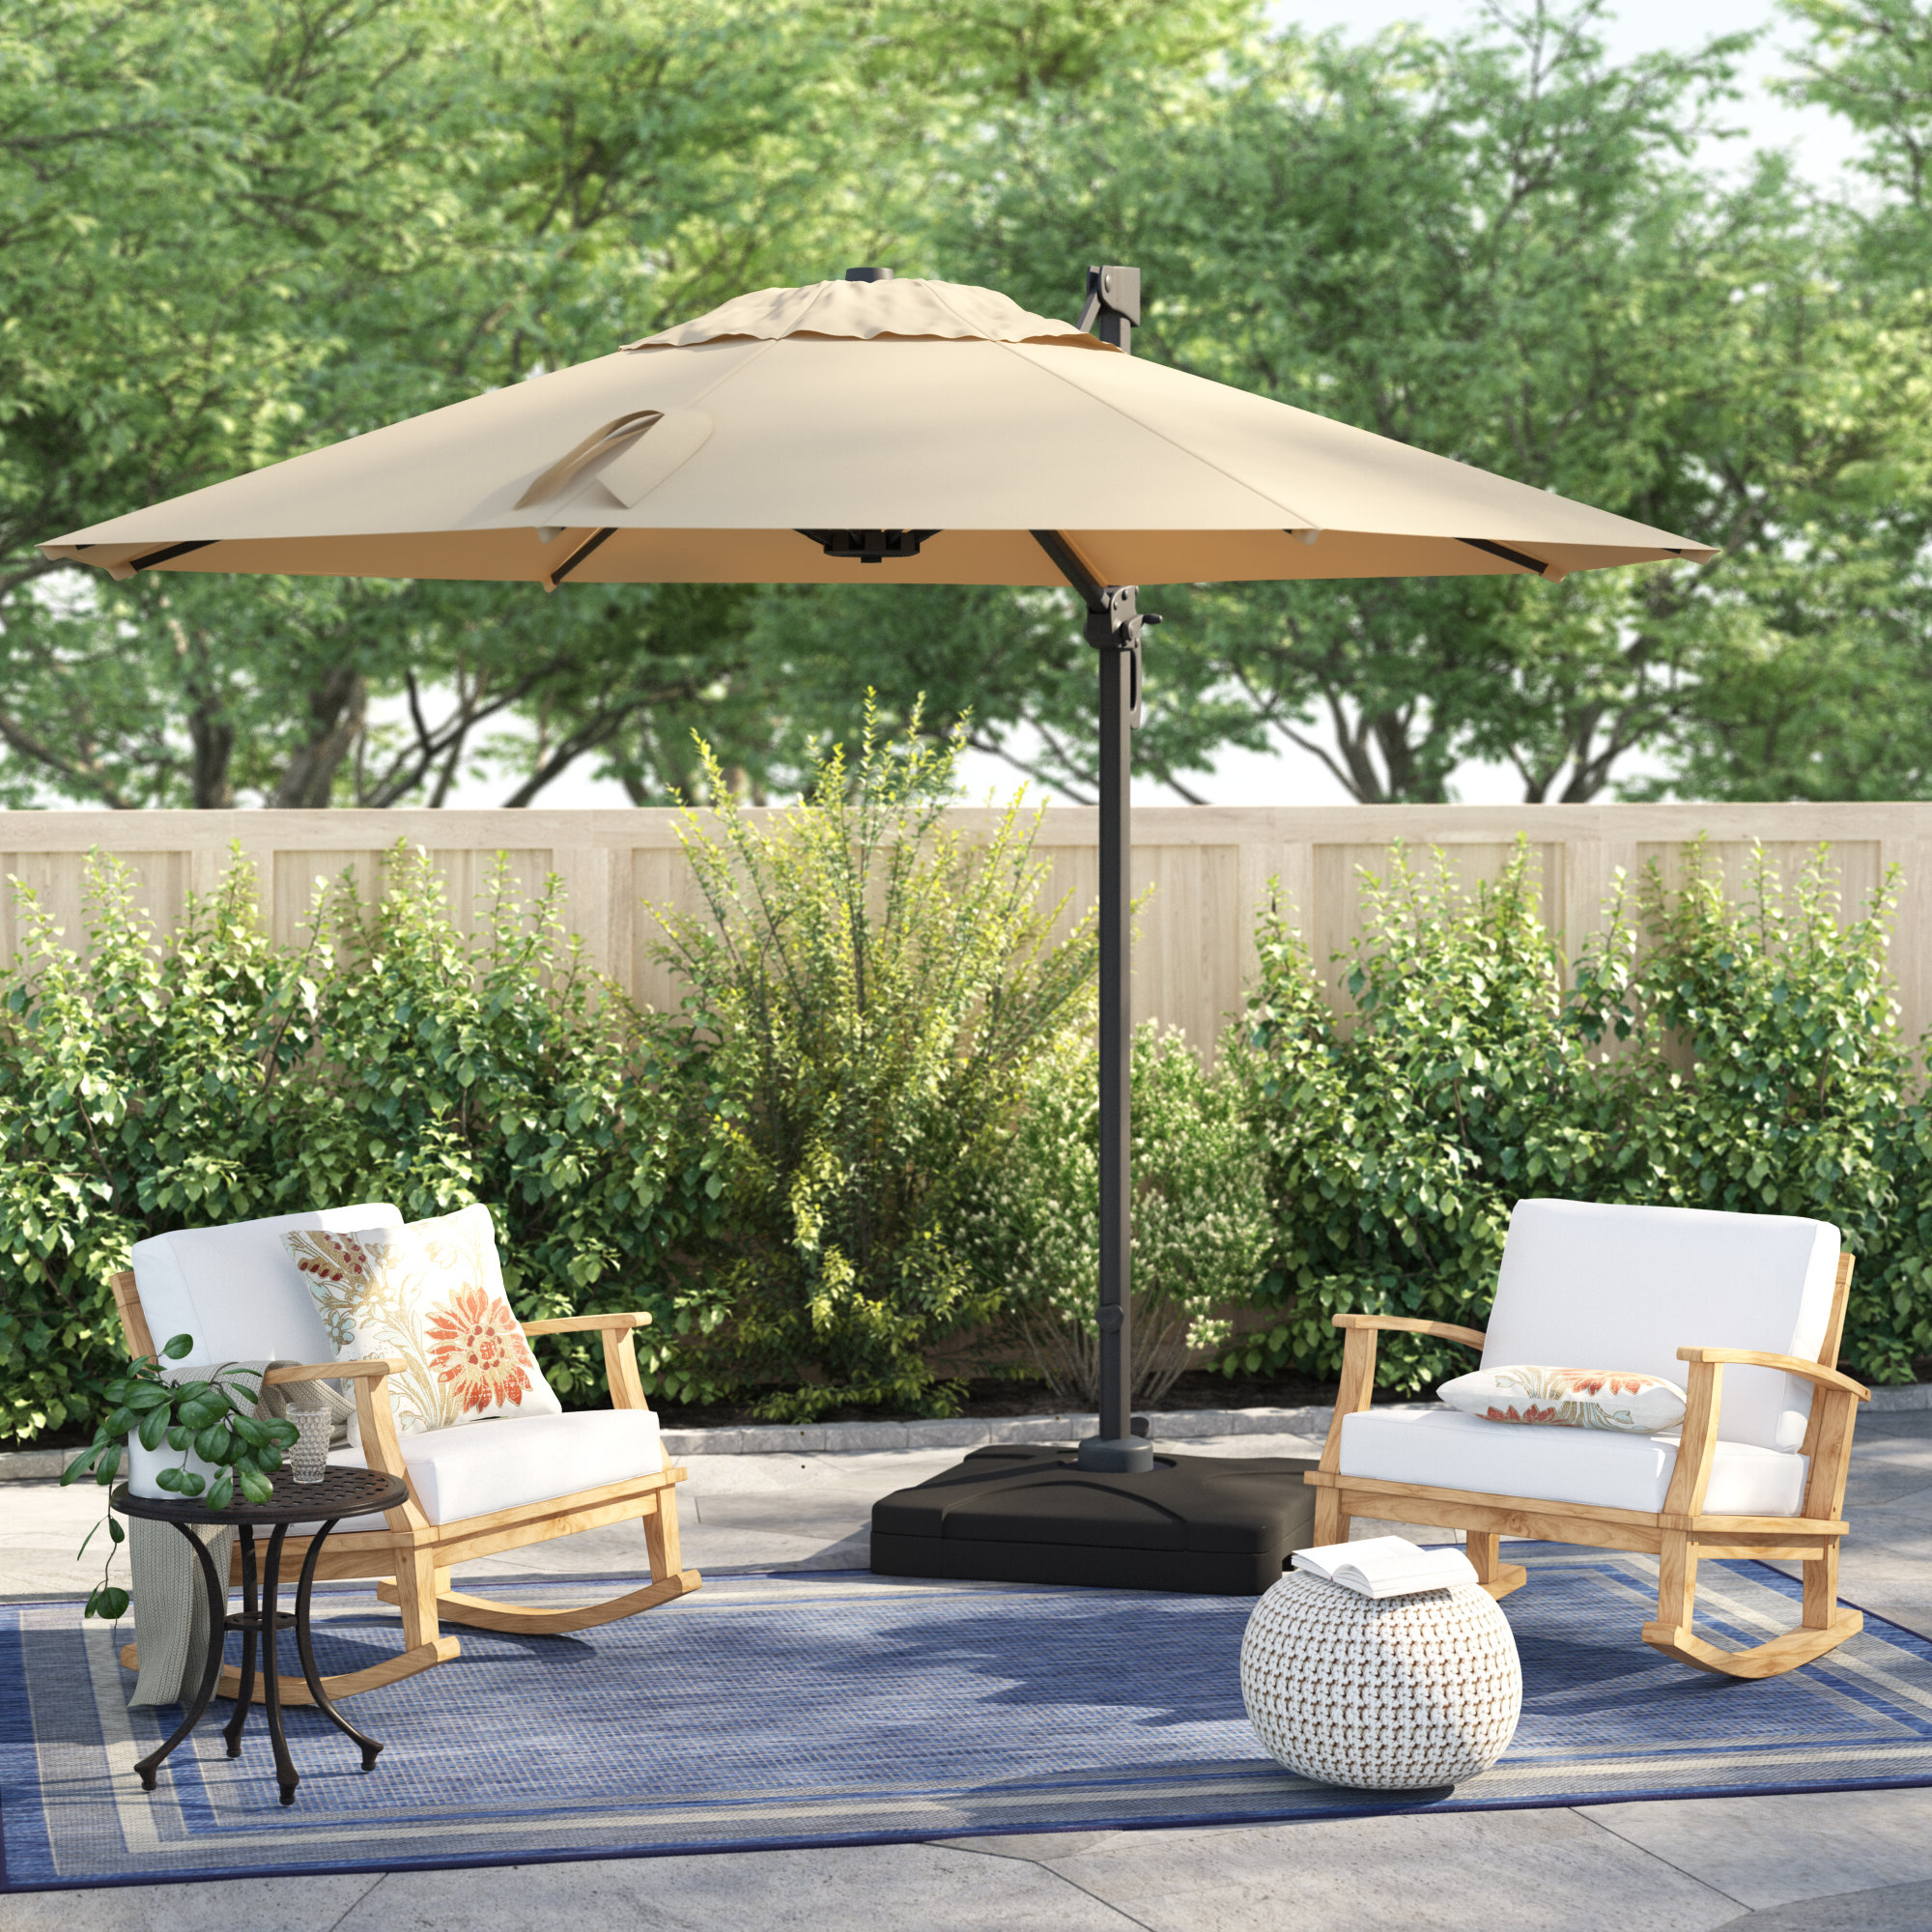 Widely Used Bormann Cantilever Umbrellas In Bellana Cantilever Umbrella (View 20 of 20)